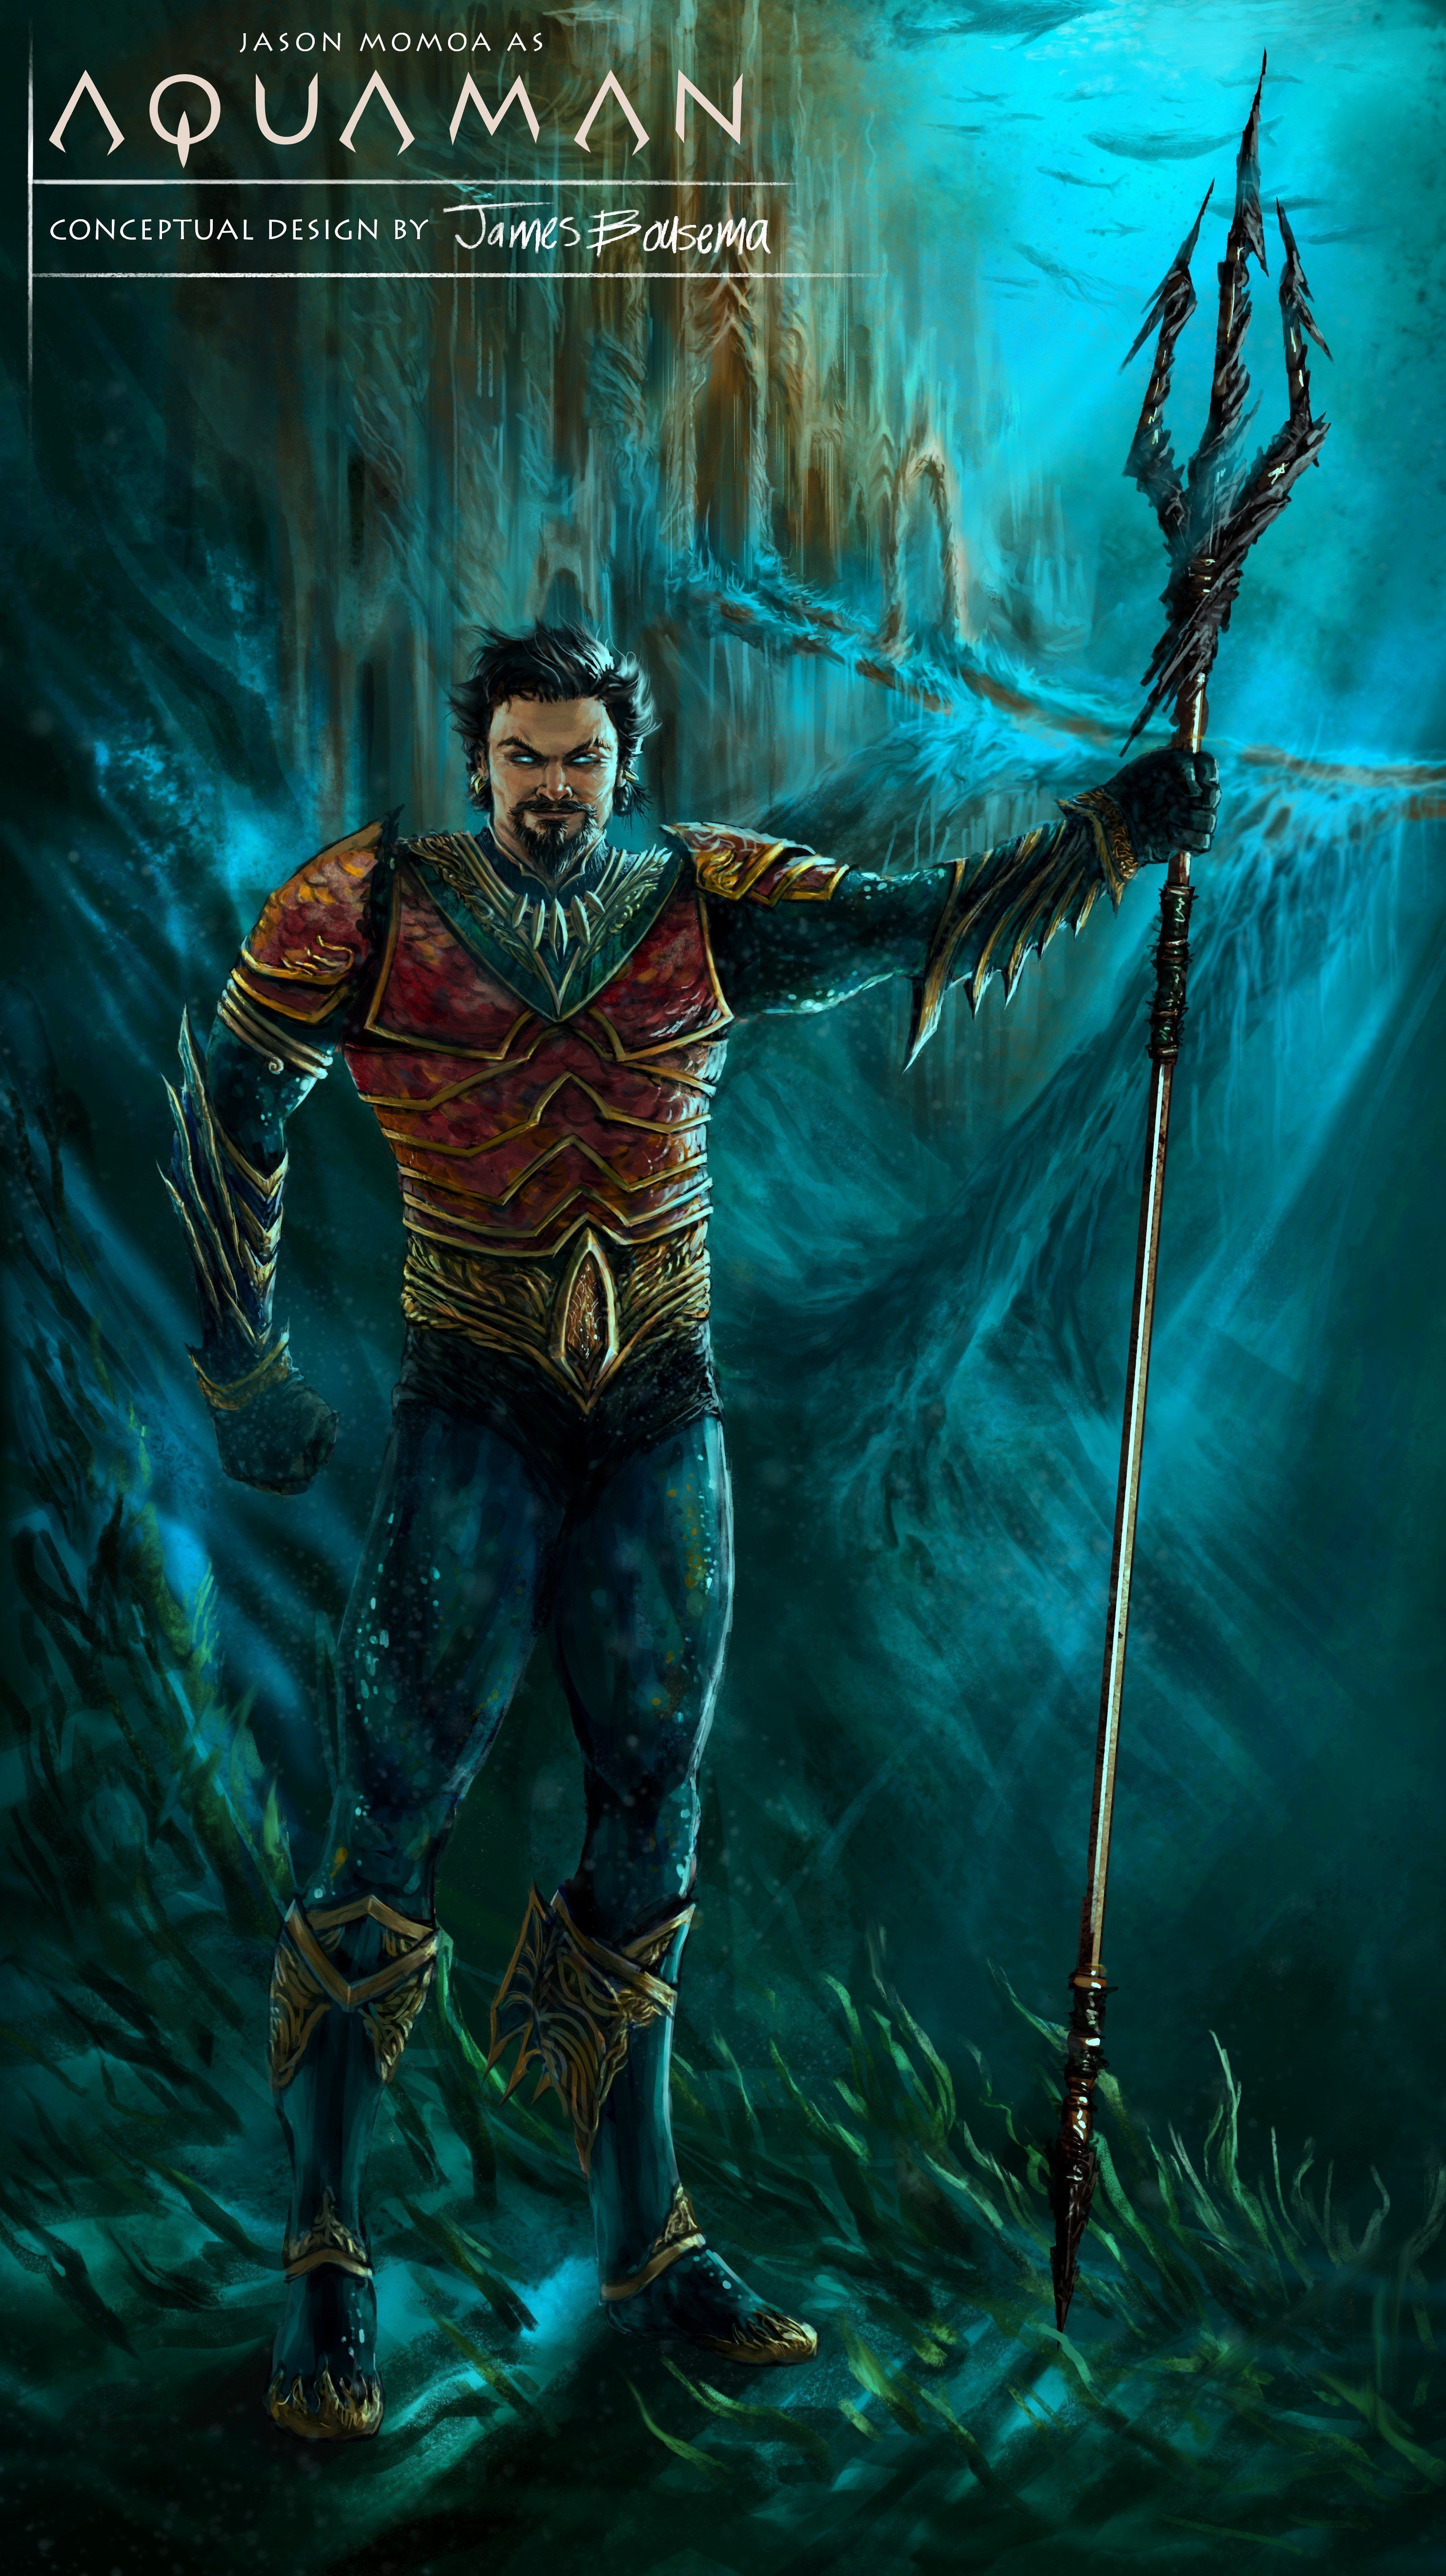 Jason Momoa As Aquaman Costume Concept Art With Images Jason